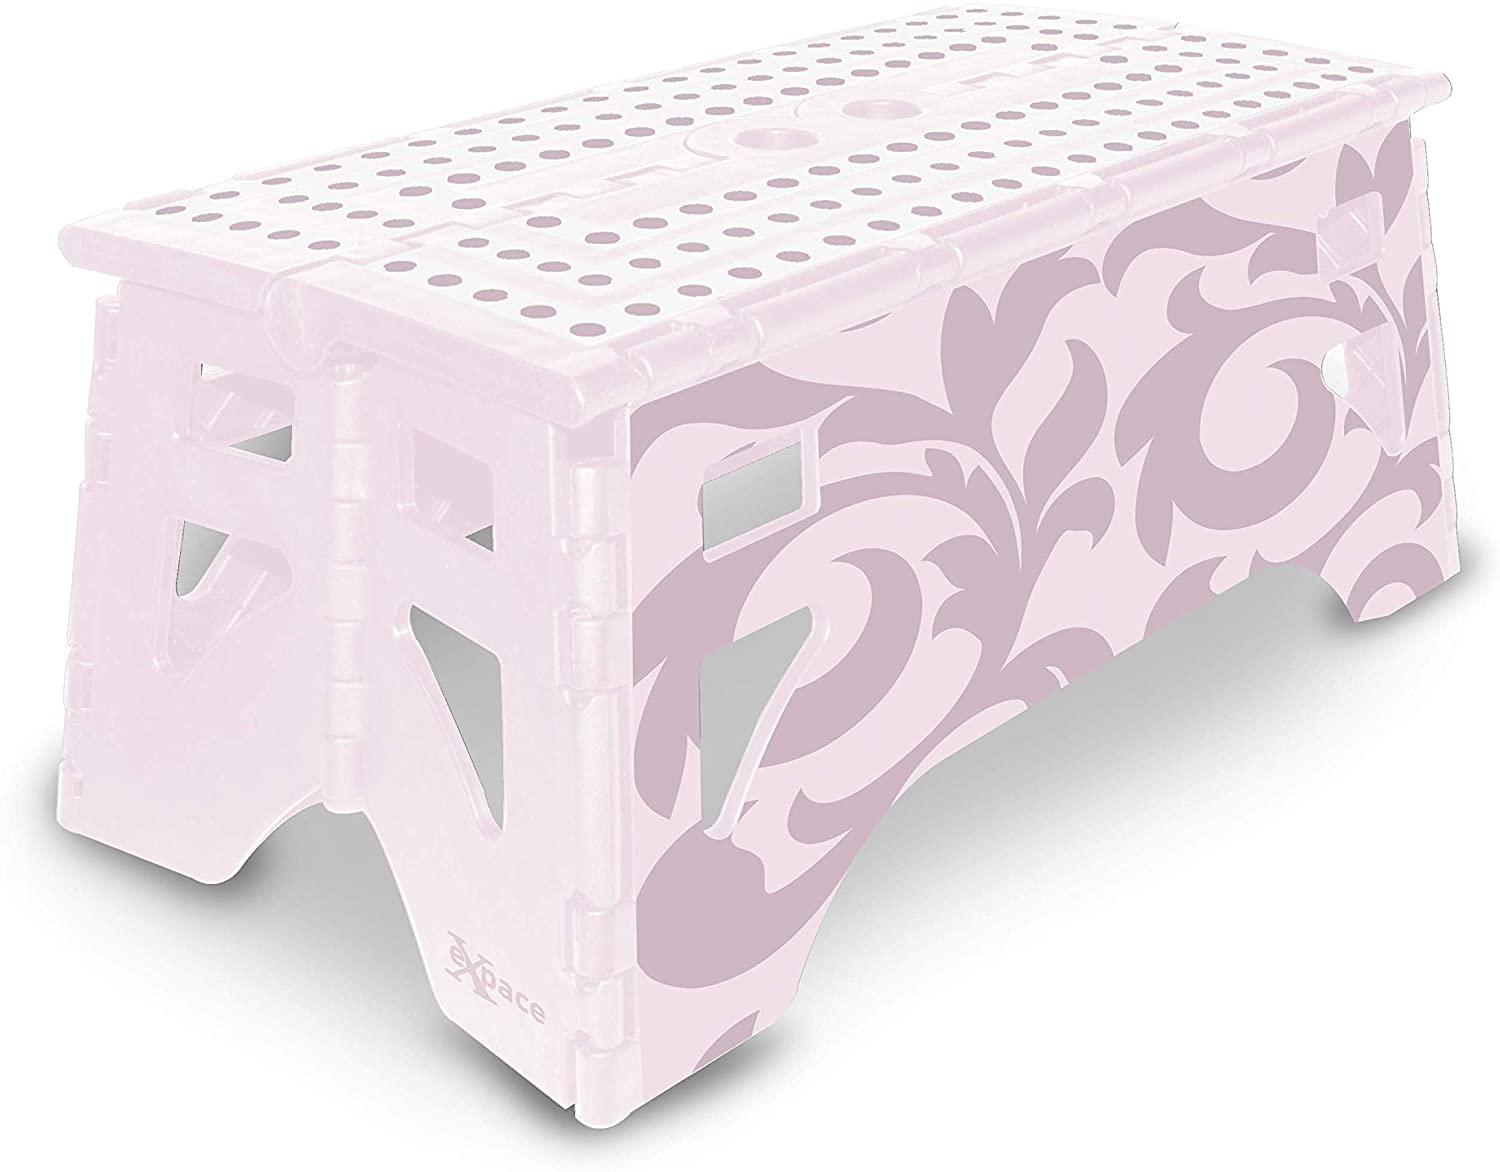 eXpace Folding Step Stool, 13-Inch Wide, Non-Slip for Indoor and Outdoor Use, Adults and Kids up to 350 lbs, Pink Floral